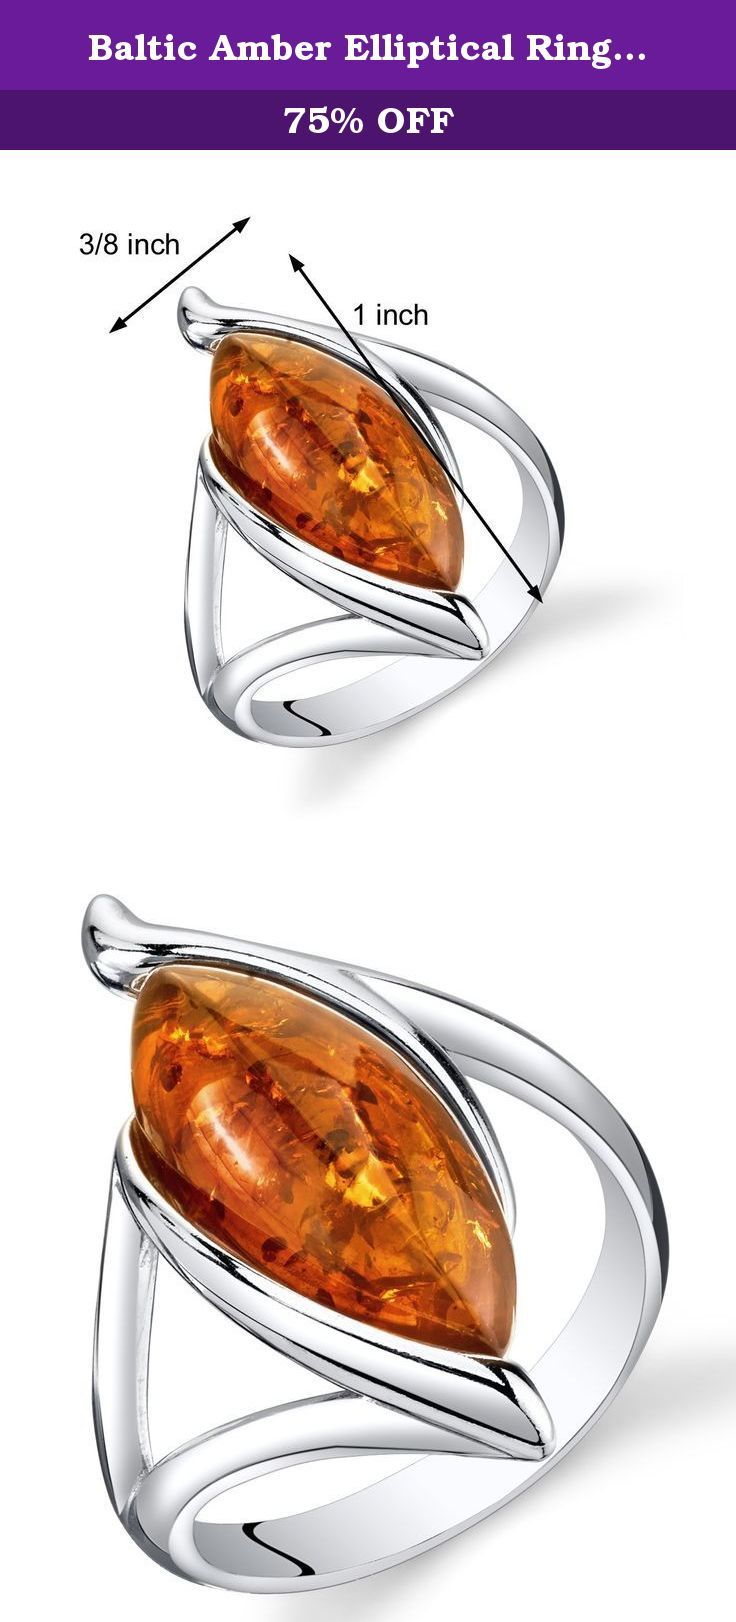 Baltic Amber Elliptical Ring Sterling Silver Cognac Color Marquise Shape Size 9. Genuine Baltic Amber, Rich Cognac Color, large marquise shape. Ring: 3 grams pure 925 sterling silver, Available in sizes 5 to 9. Ring features exceptional design, craftsmanship and finishing. Perfect gift for Mothers Day, Birthdays, Valentines Day, Graduation, Christmas or just about any other occasion. Money Back Guarantee. Includes a Signature Gift Box. Style SR11318.